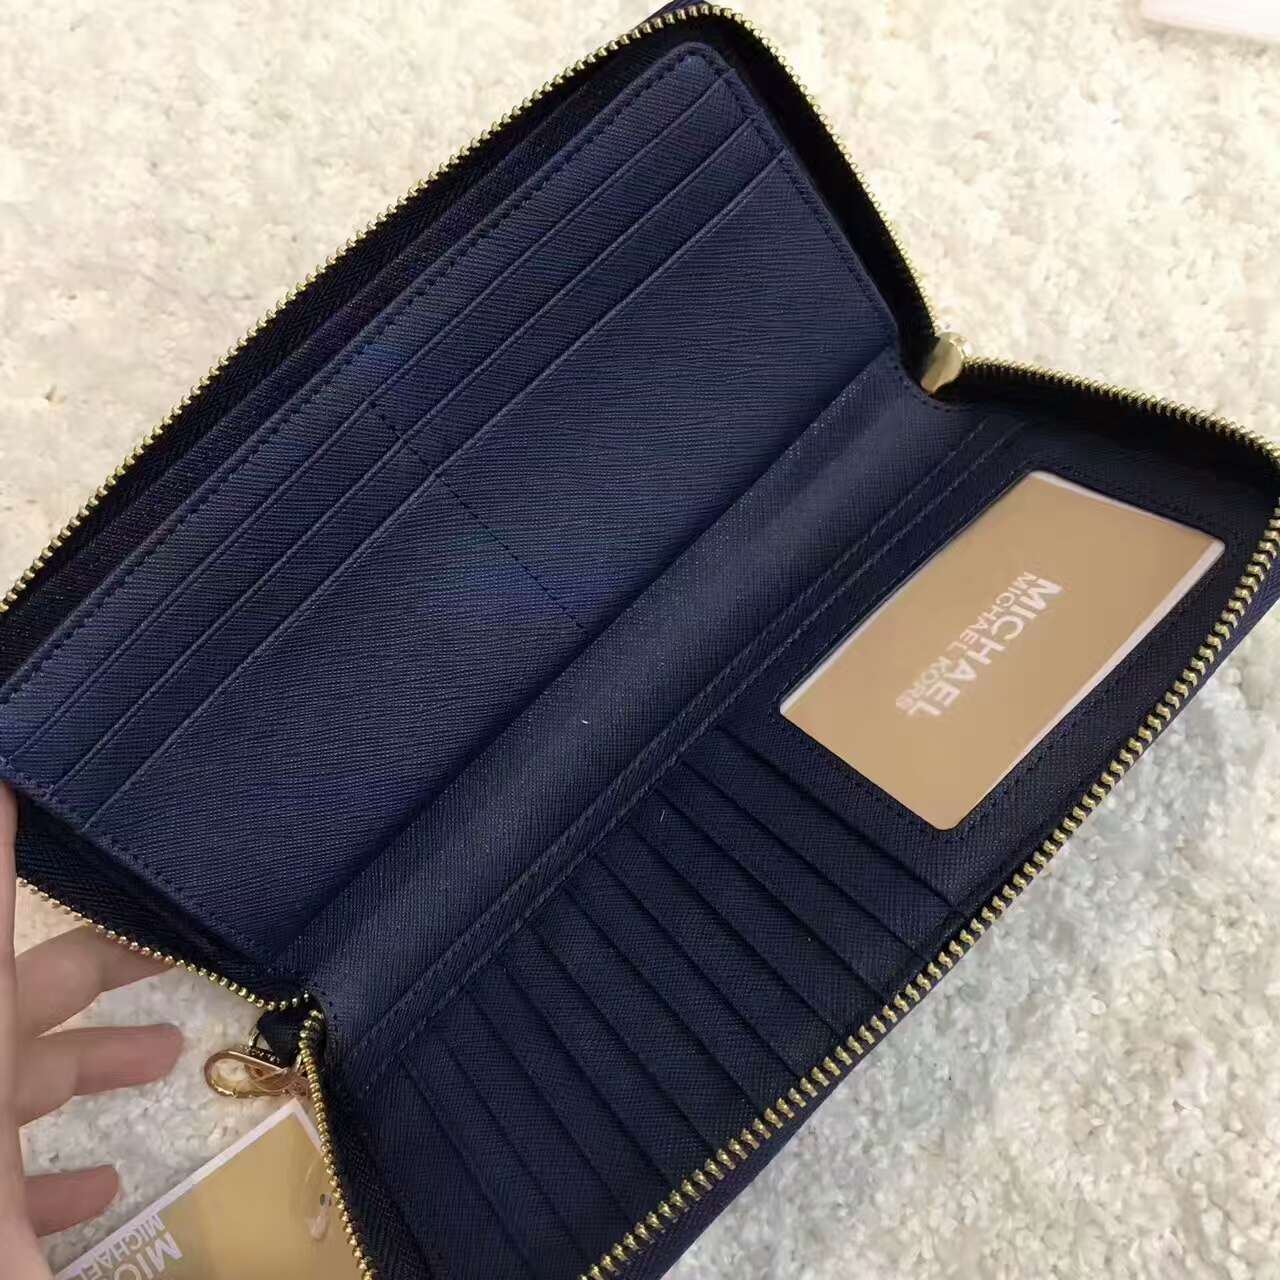 72677537559f Auth Michael Kors Jet Set Travel Leather Continental Wallet Wristlet Navy  Blue